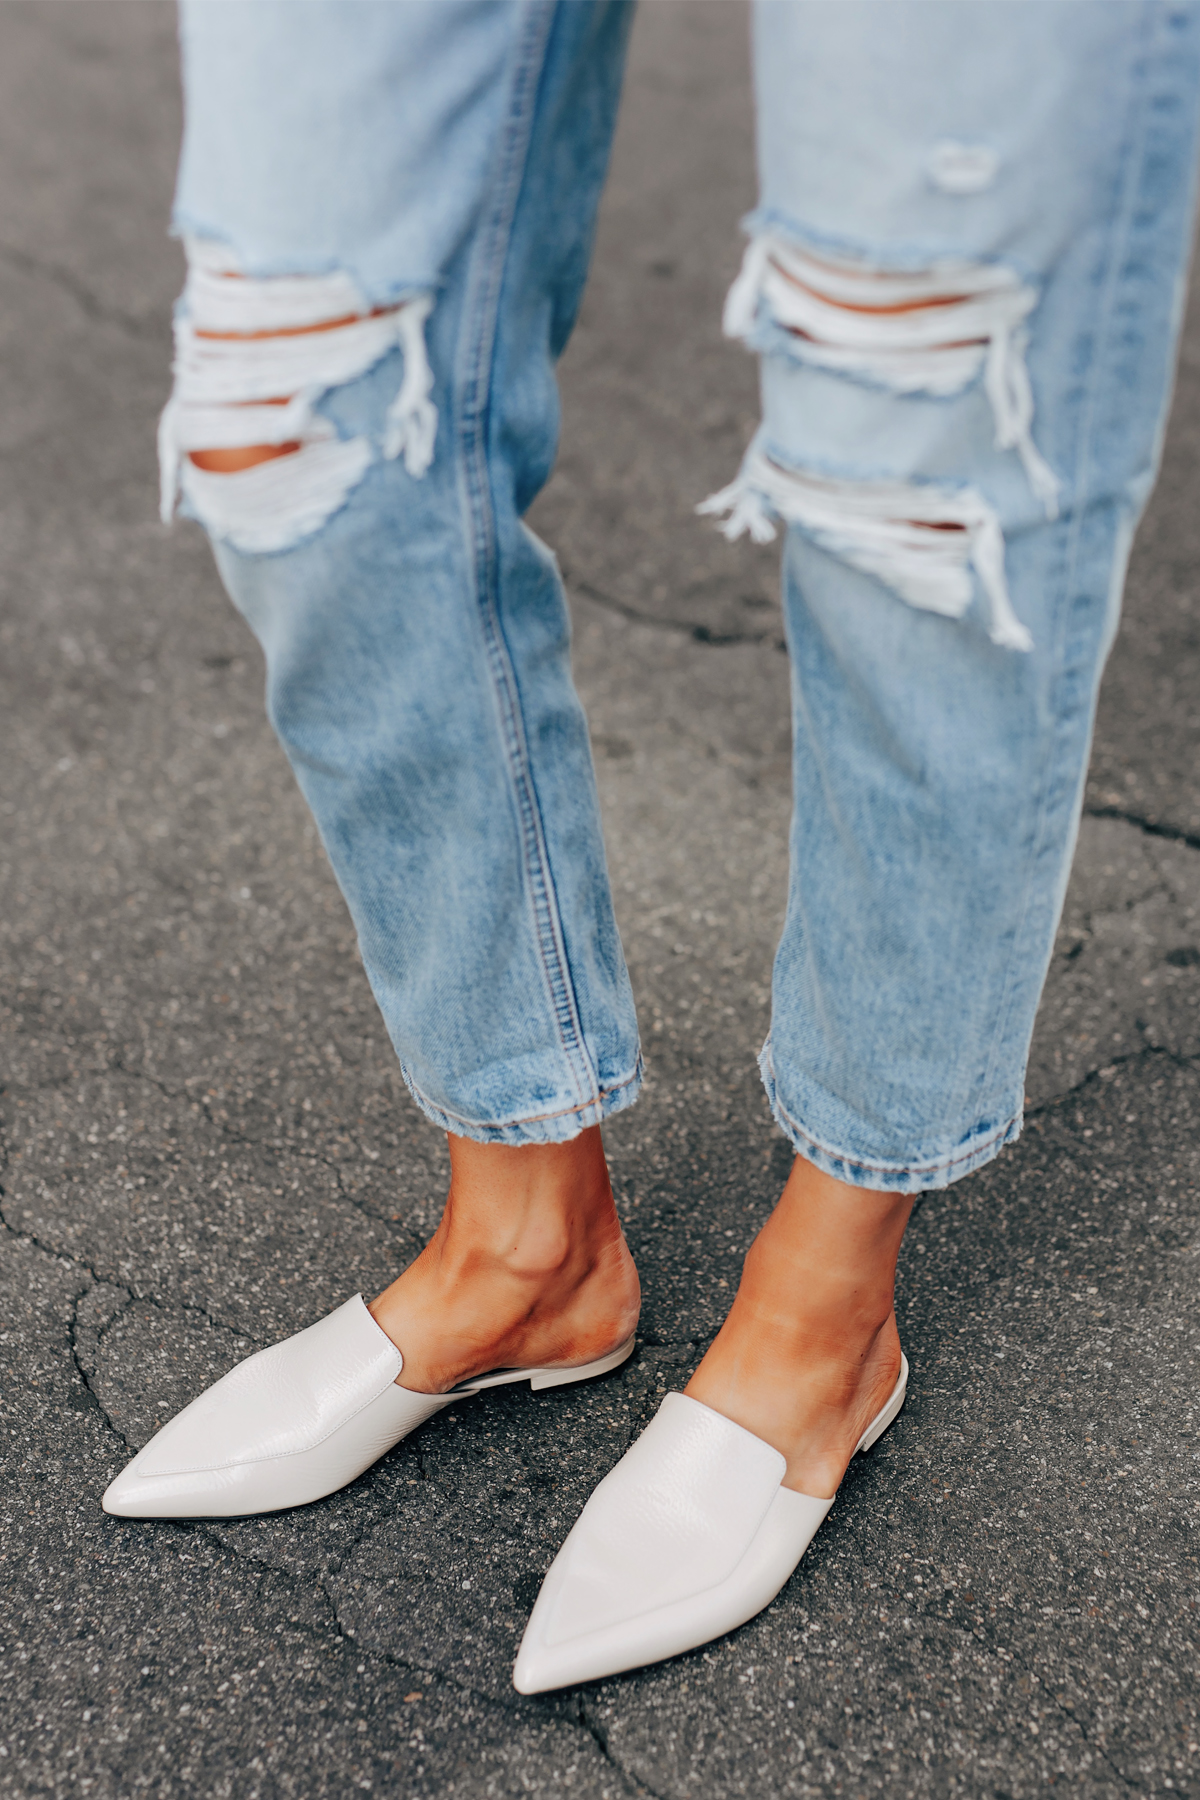 Fashion Jackson Wearing Everlane Ripped Boyfriend Jeans Everlane White Mules